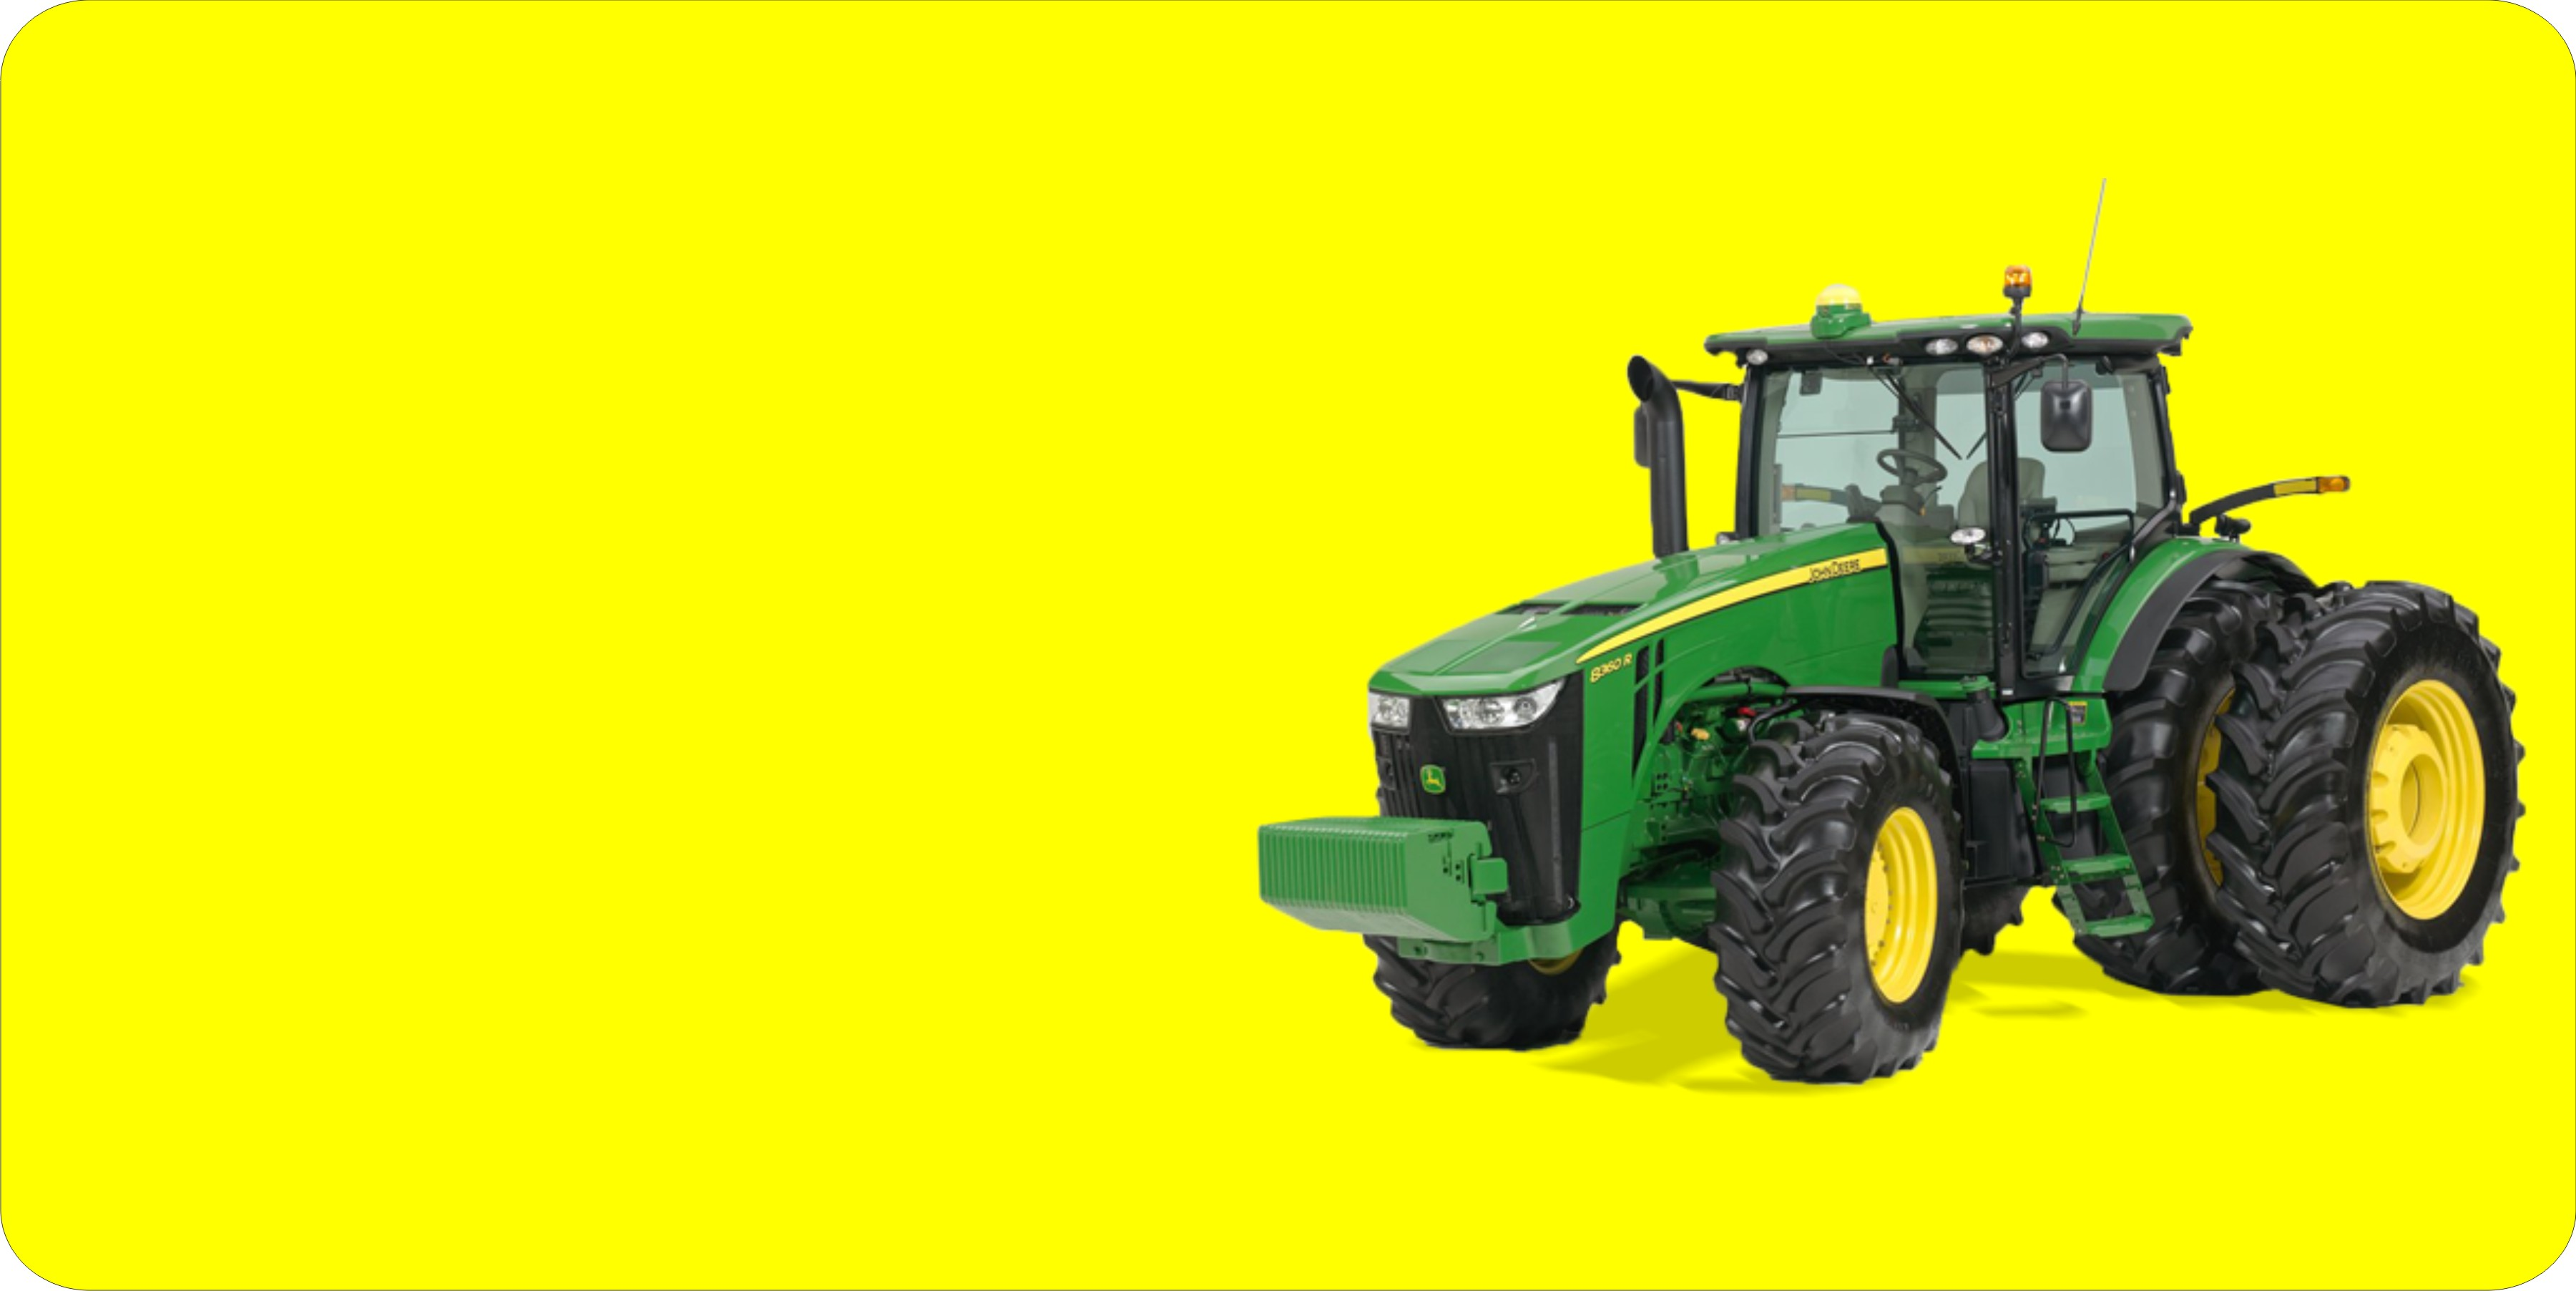 JOHN DEERE Tractor Offset On Yellow Plate